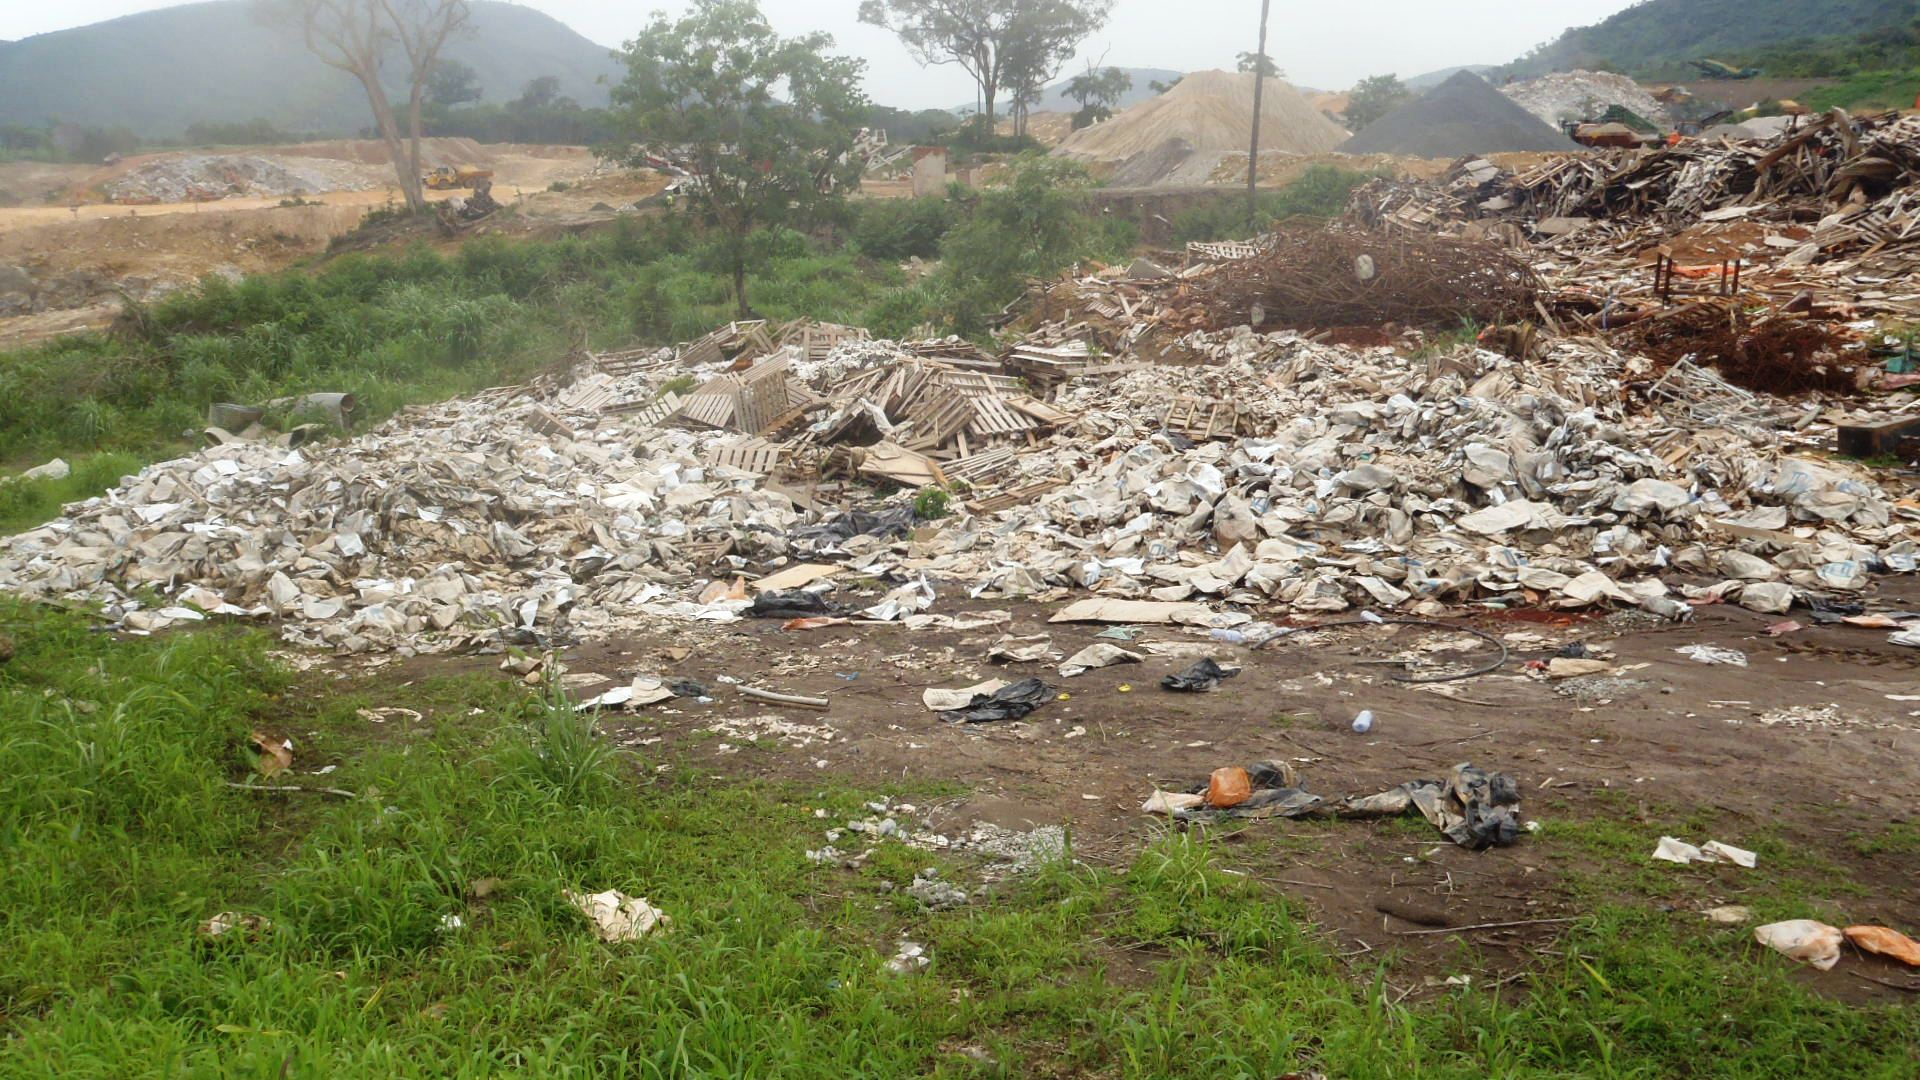 Non-compliant waste at mine site